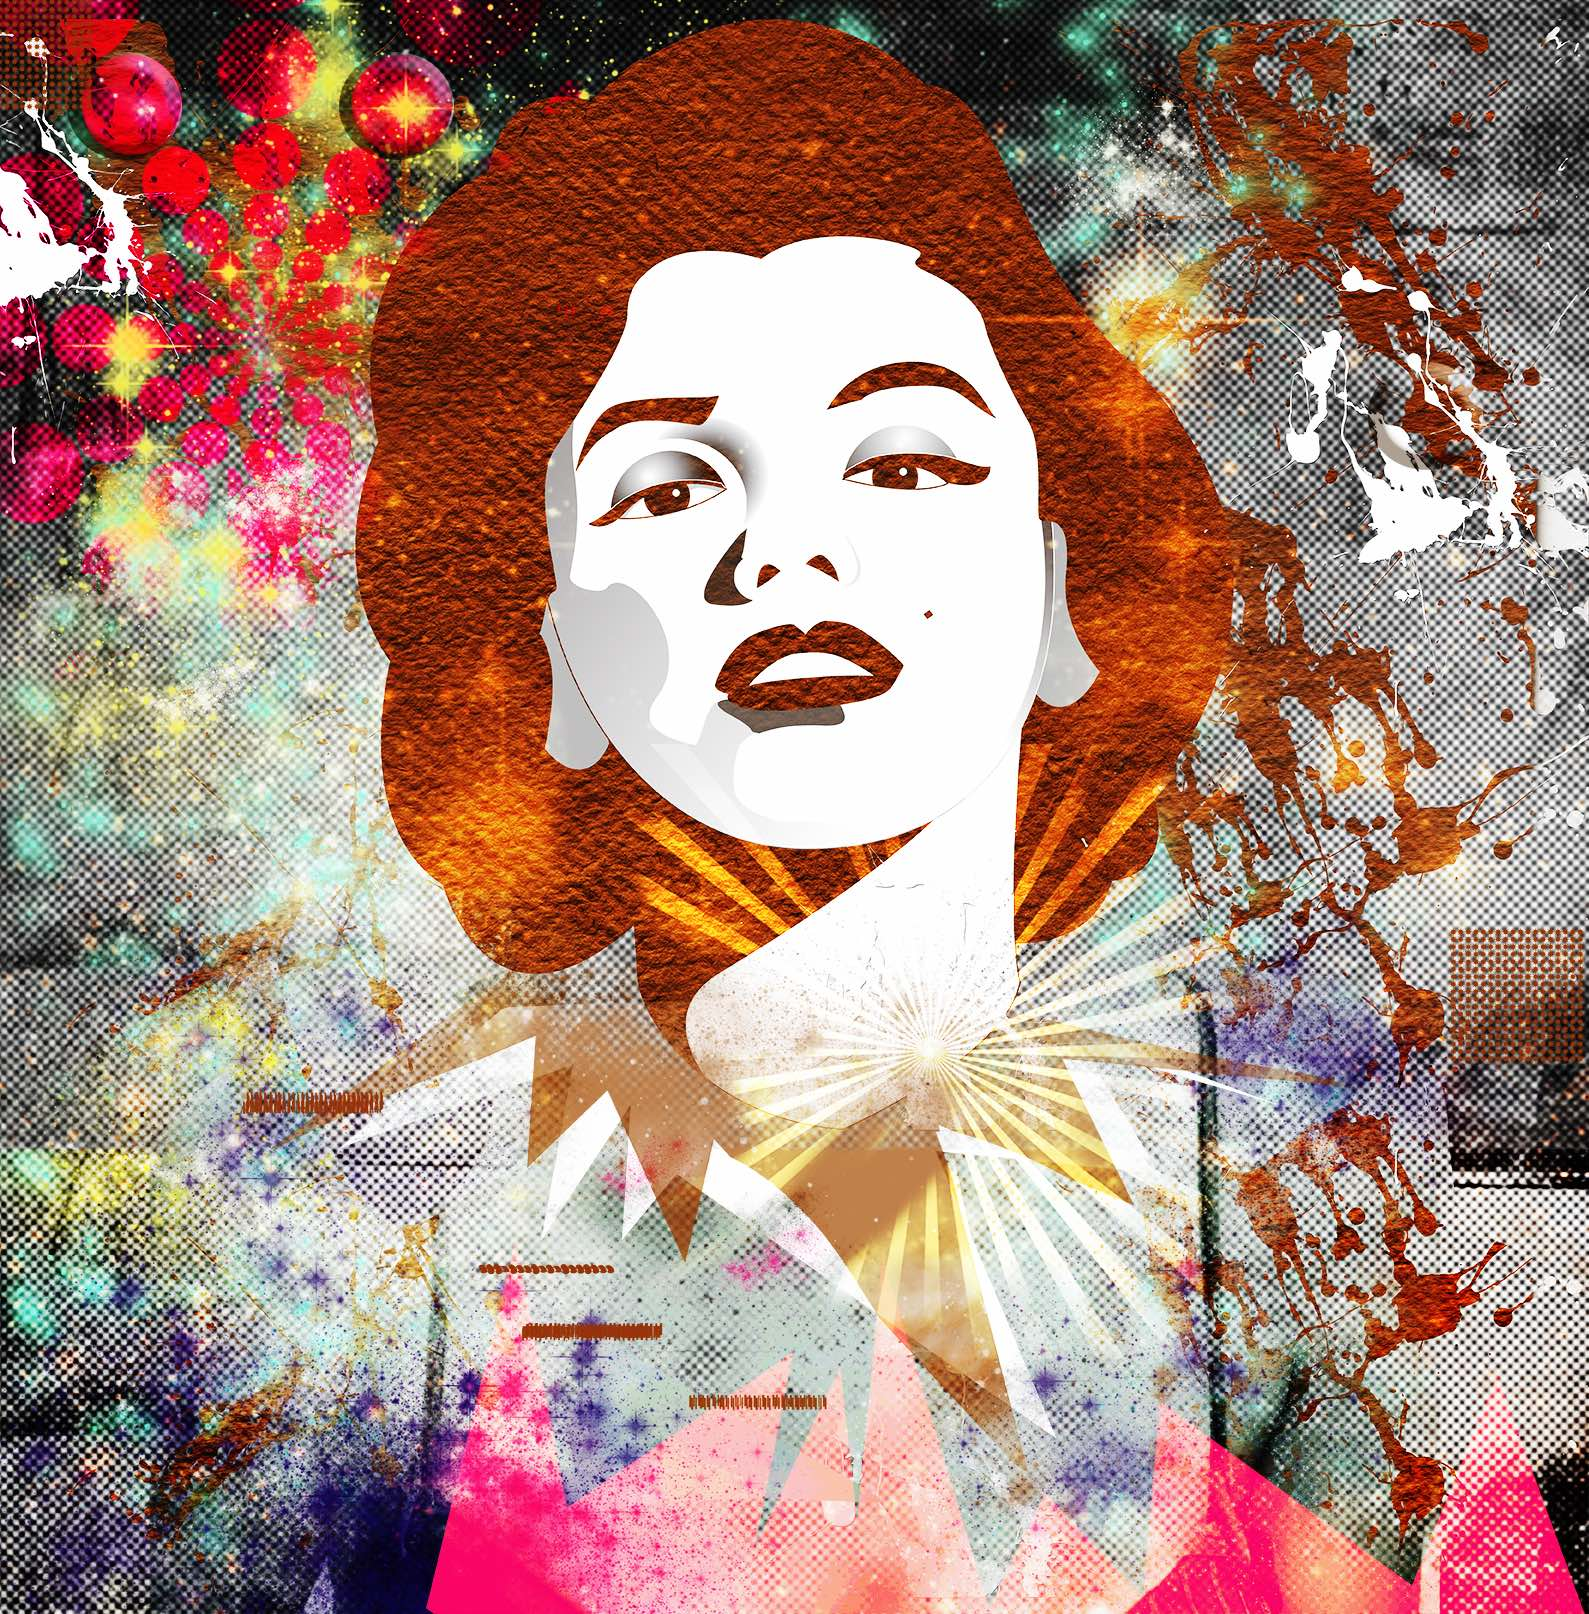 Marilyn – Illustration and collage